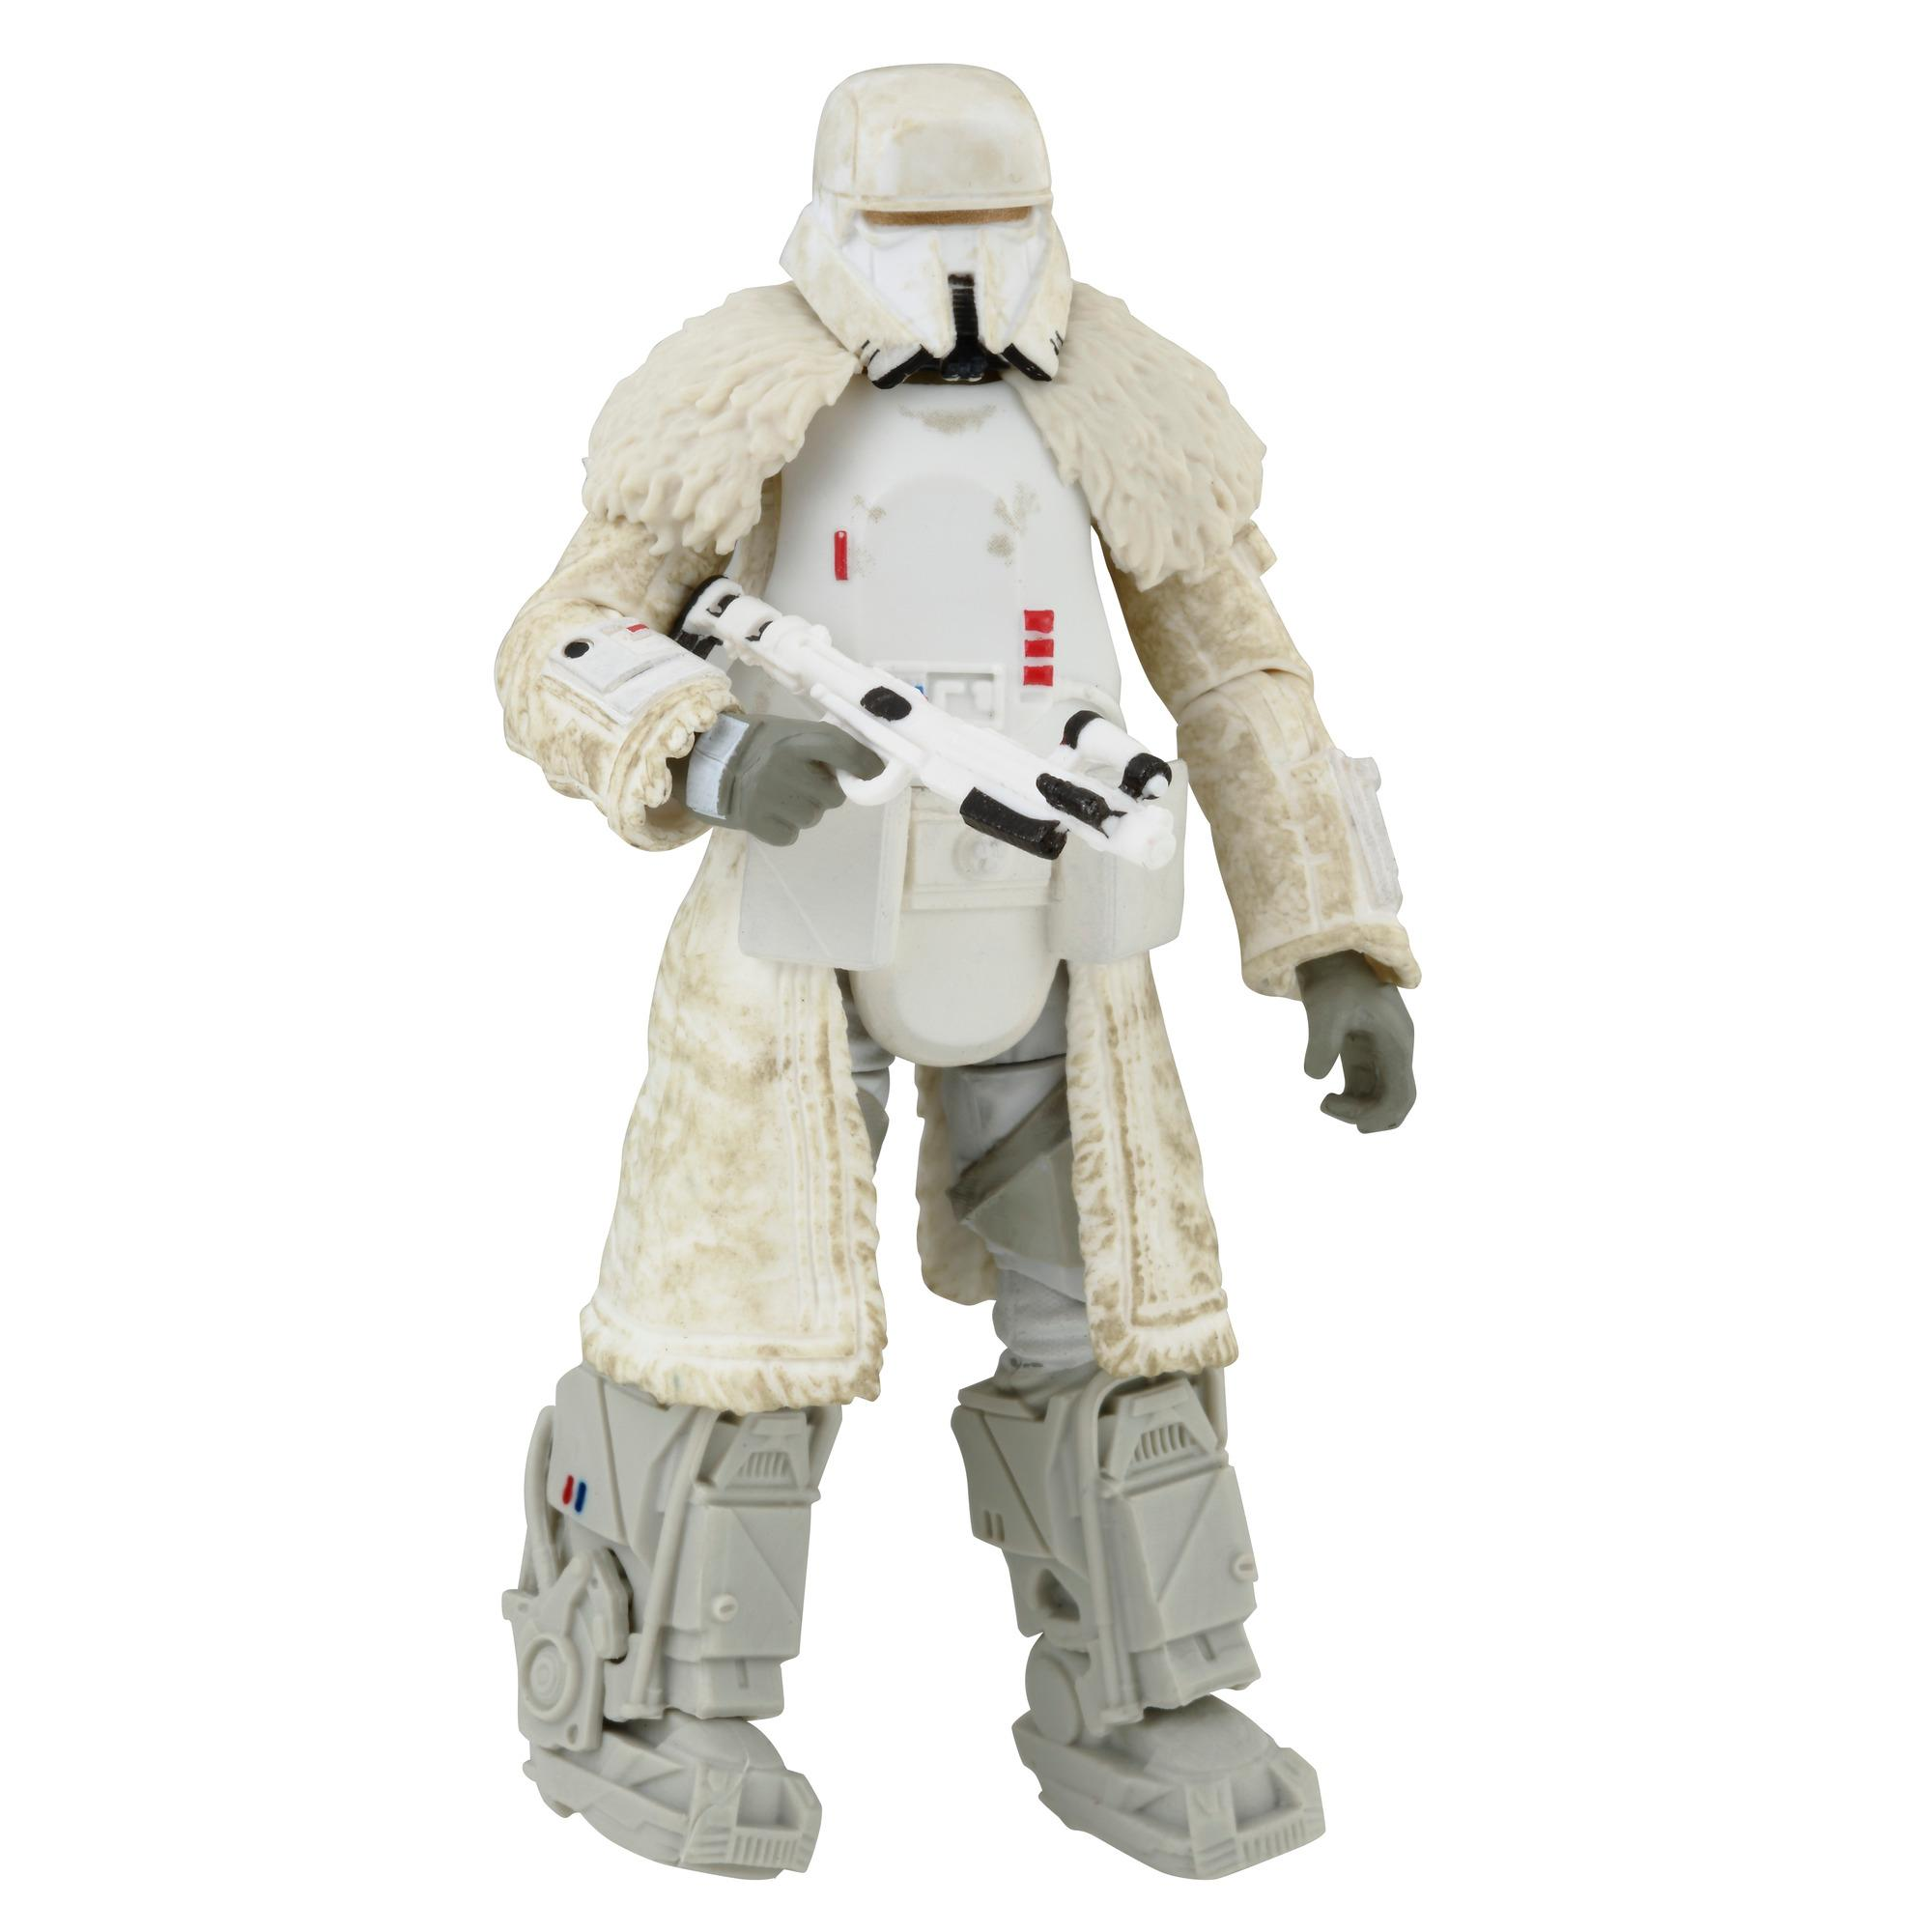 Star Wars The Vintage Collection Range Trooper 3.75-inch Figure